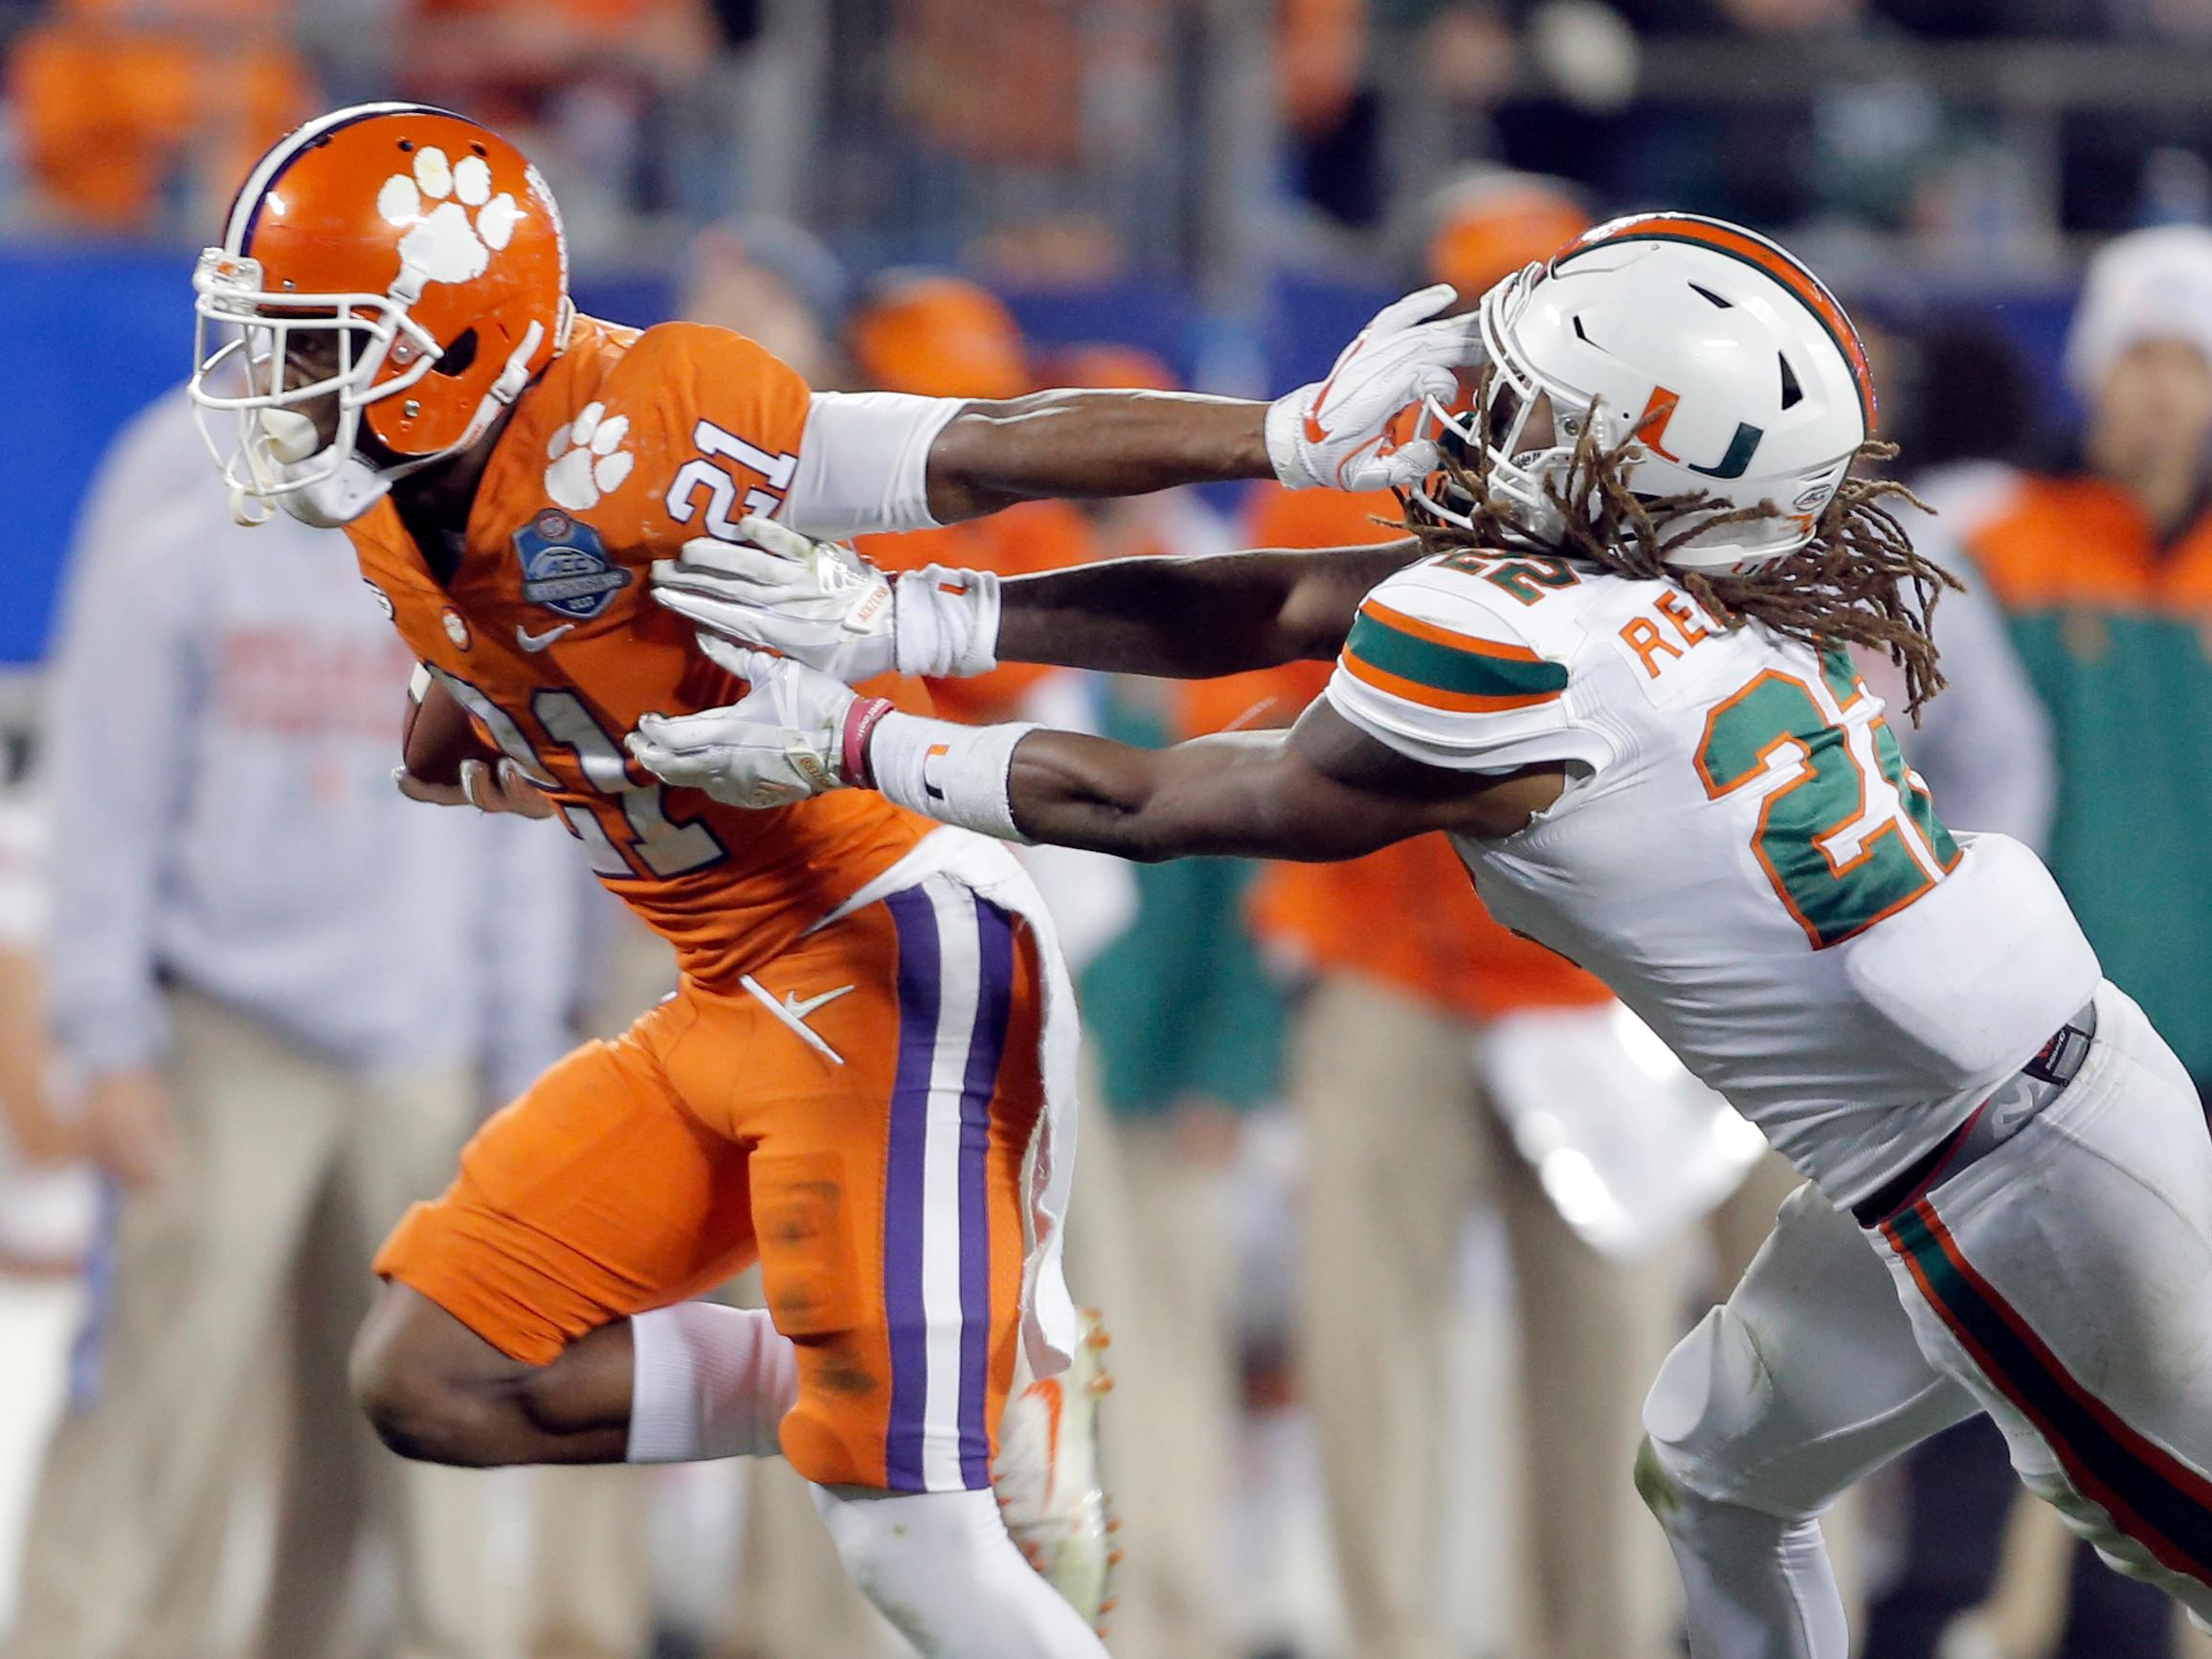 Clemson's Ray-Ray McCloud (21) pushes away from Miami's Sheldrick Redwine (22) during the second half of the Atlantic Coast Conference championship NCAA college football game in Charlotte, N.C., Saturday, Dec. 2, 2017. (AP Photo/Bob Leverone)